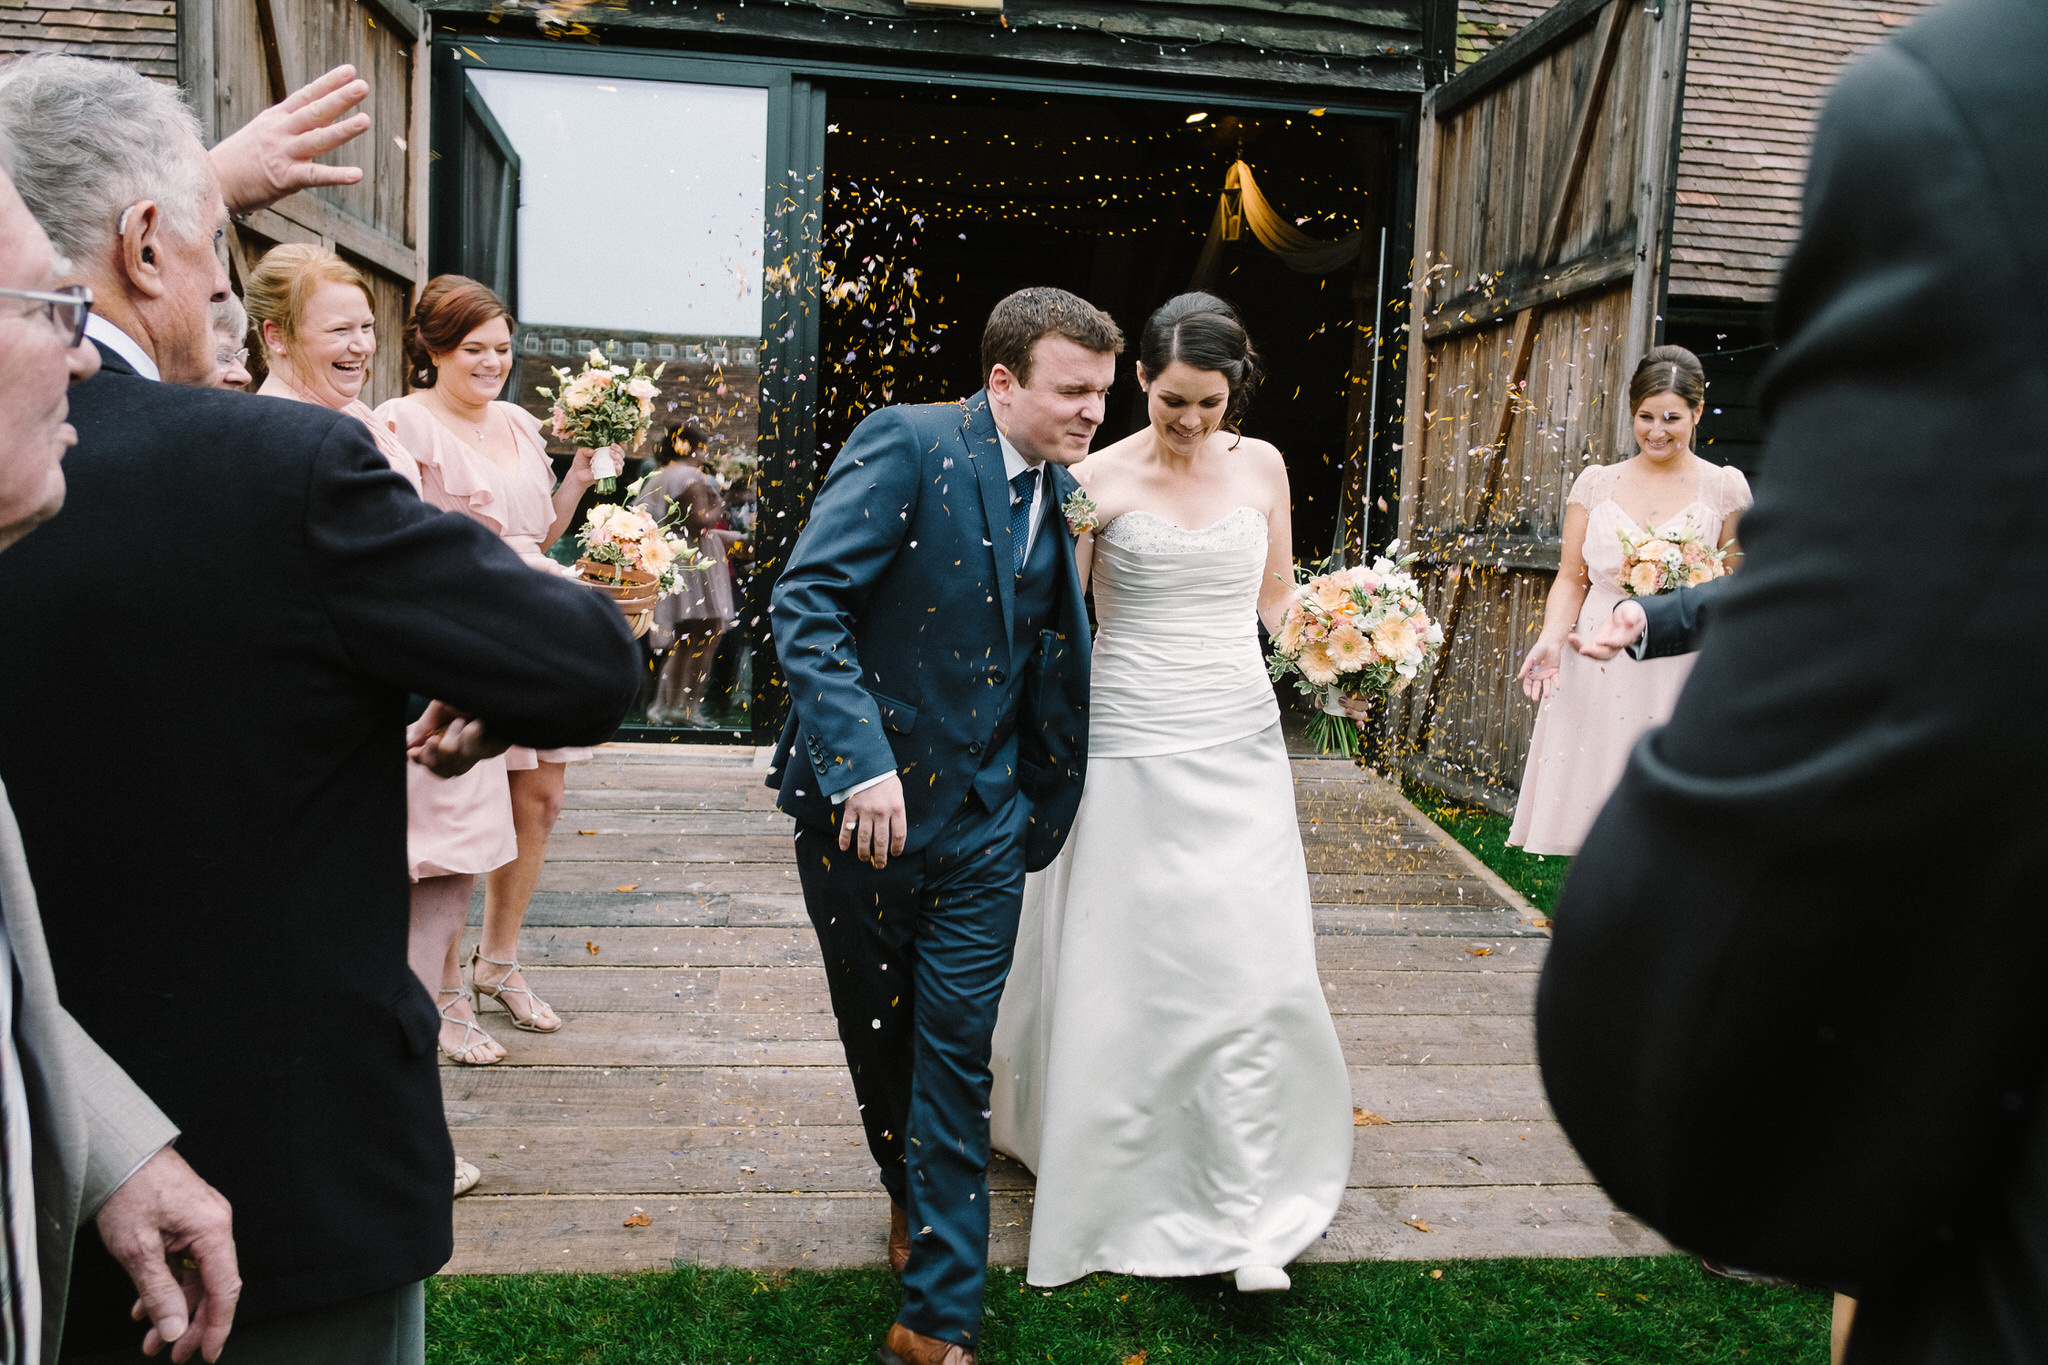 A bride and groom leaving their wedding ceremony at Lains Barn, Wantage, Oxfordshire